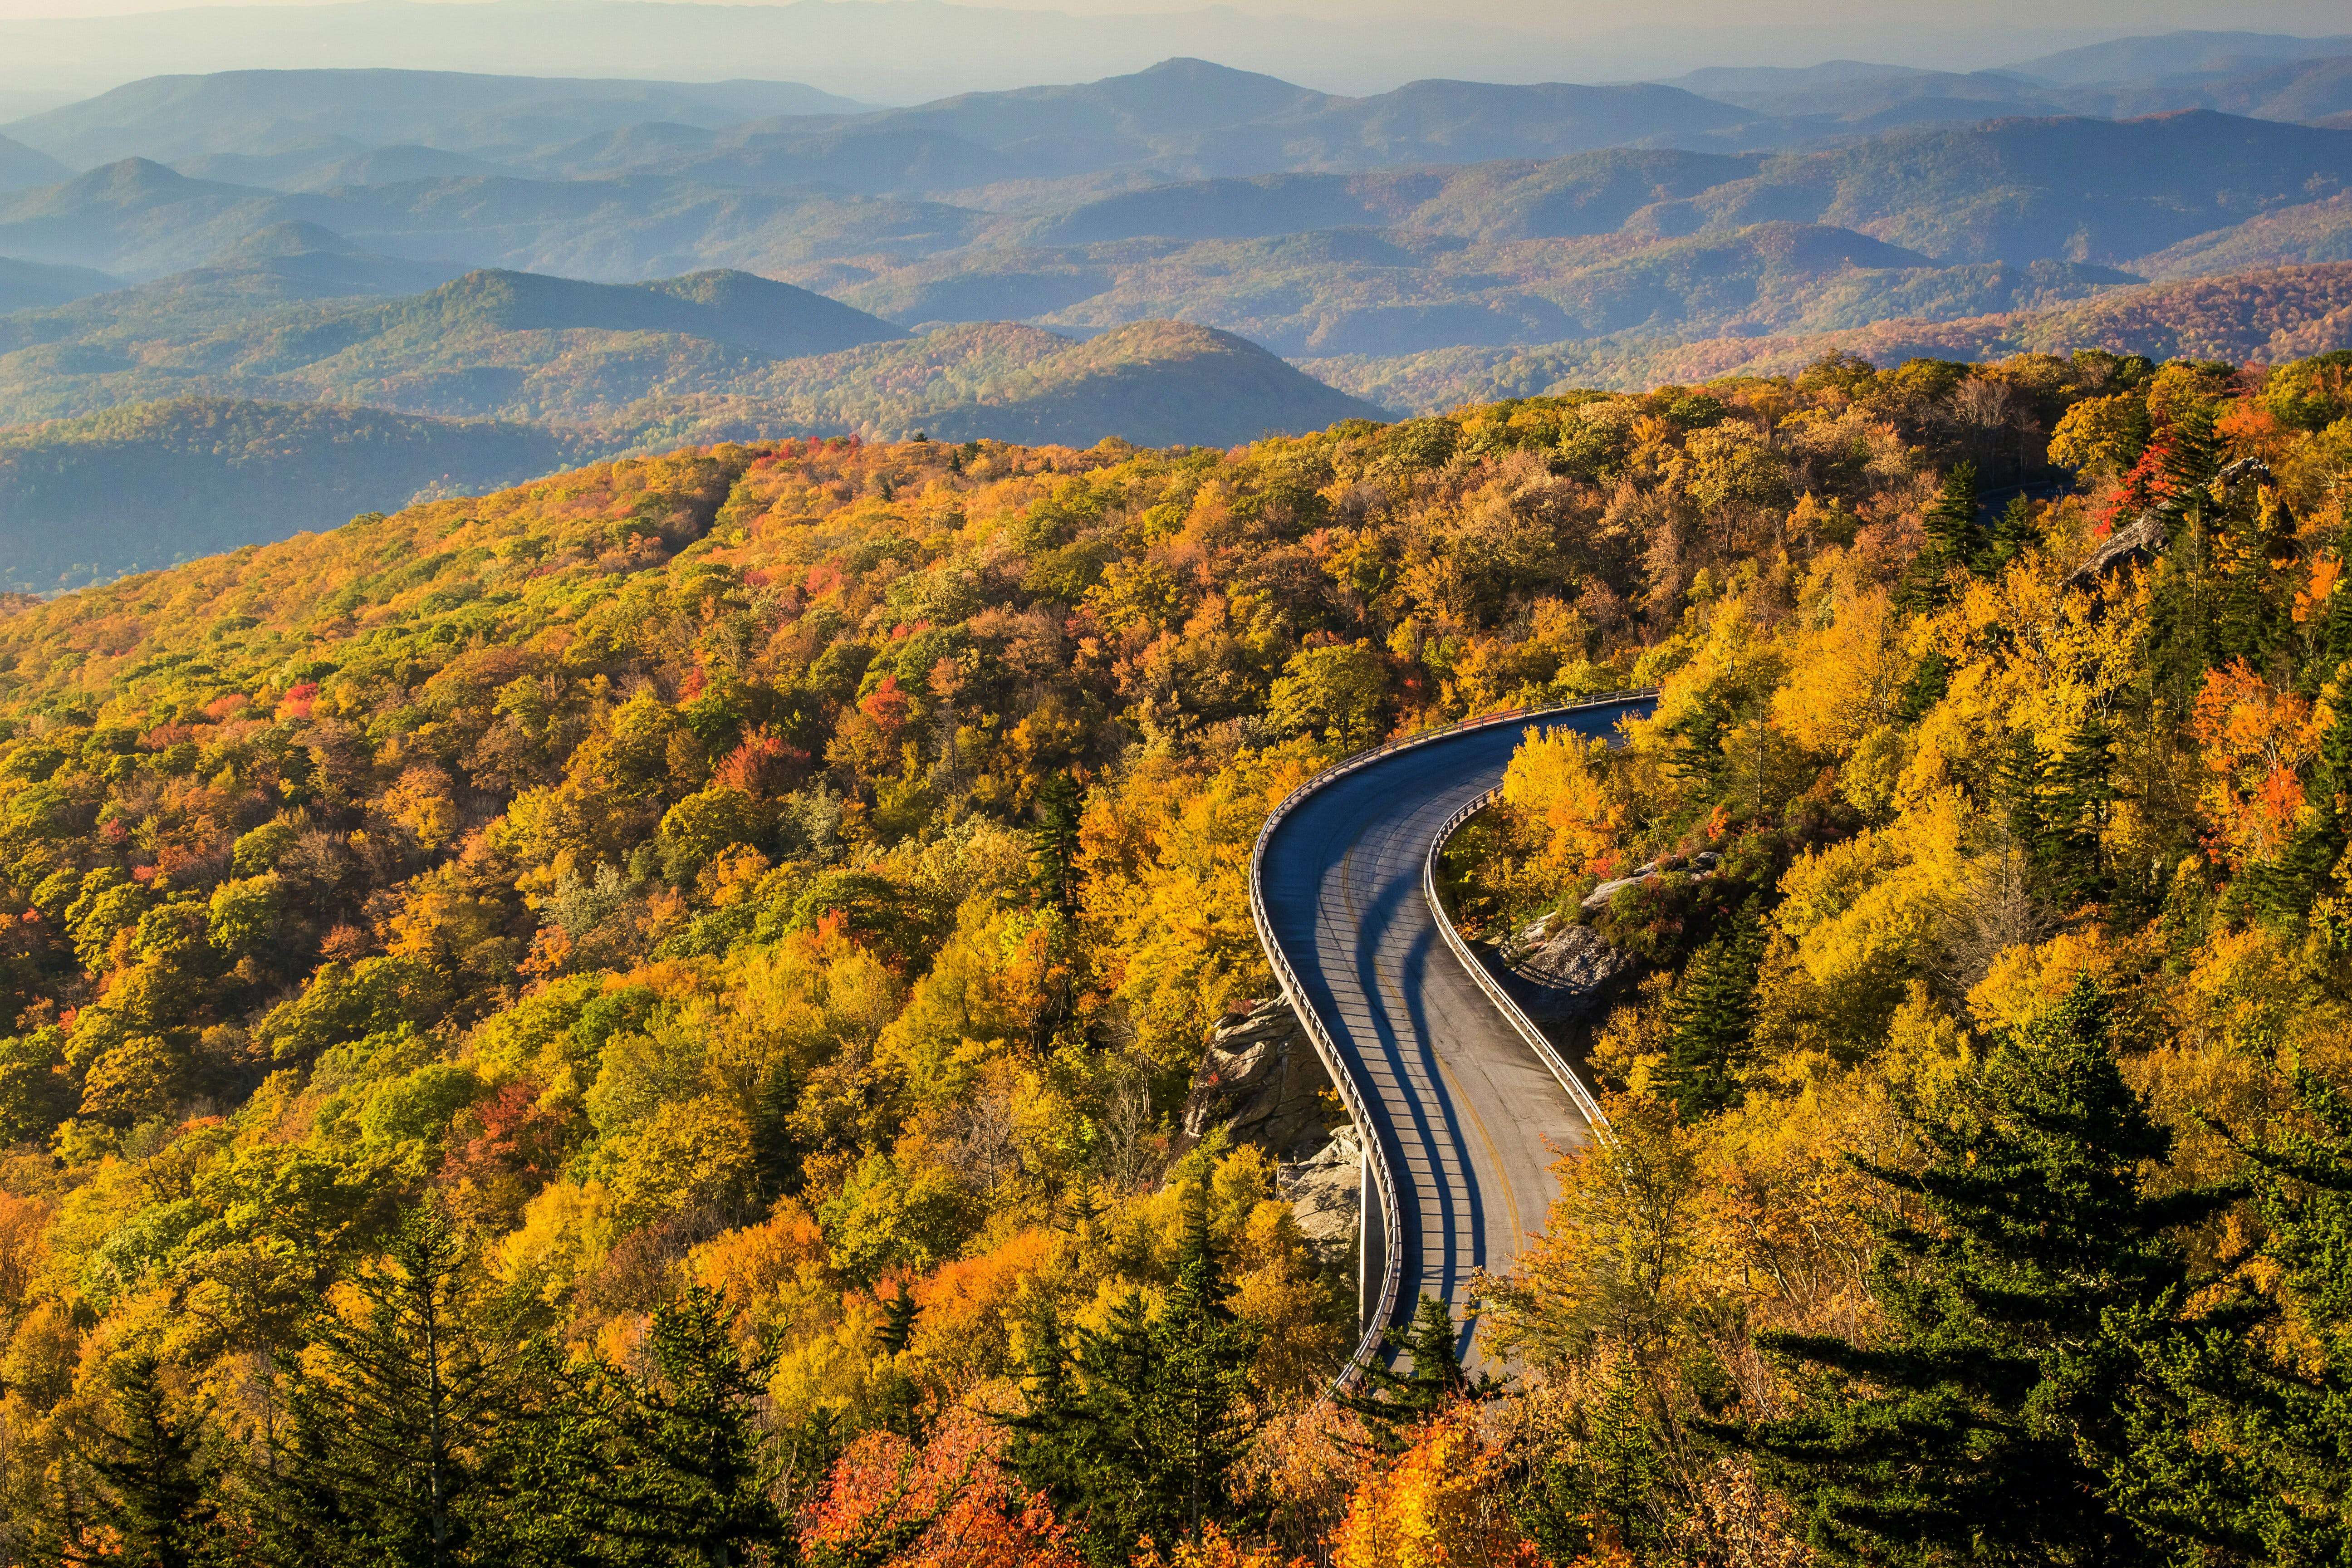 The Linn Cove Viaduct during an Autumn sunrise on the Blue Ridge Parkway